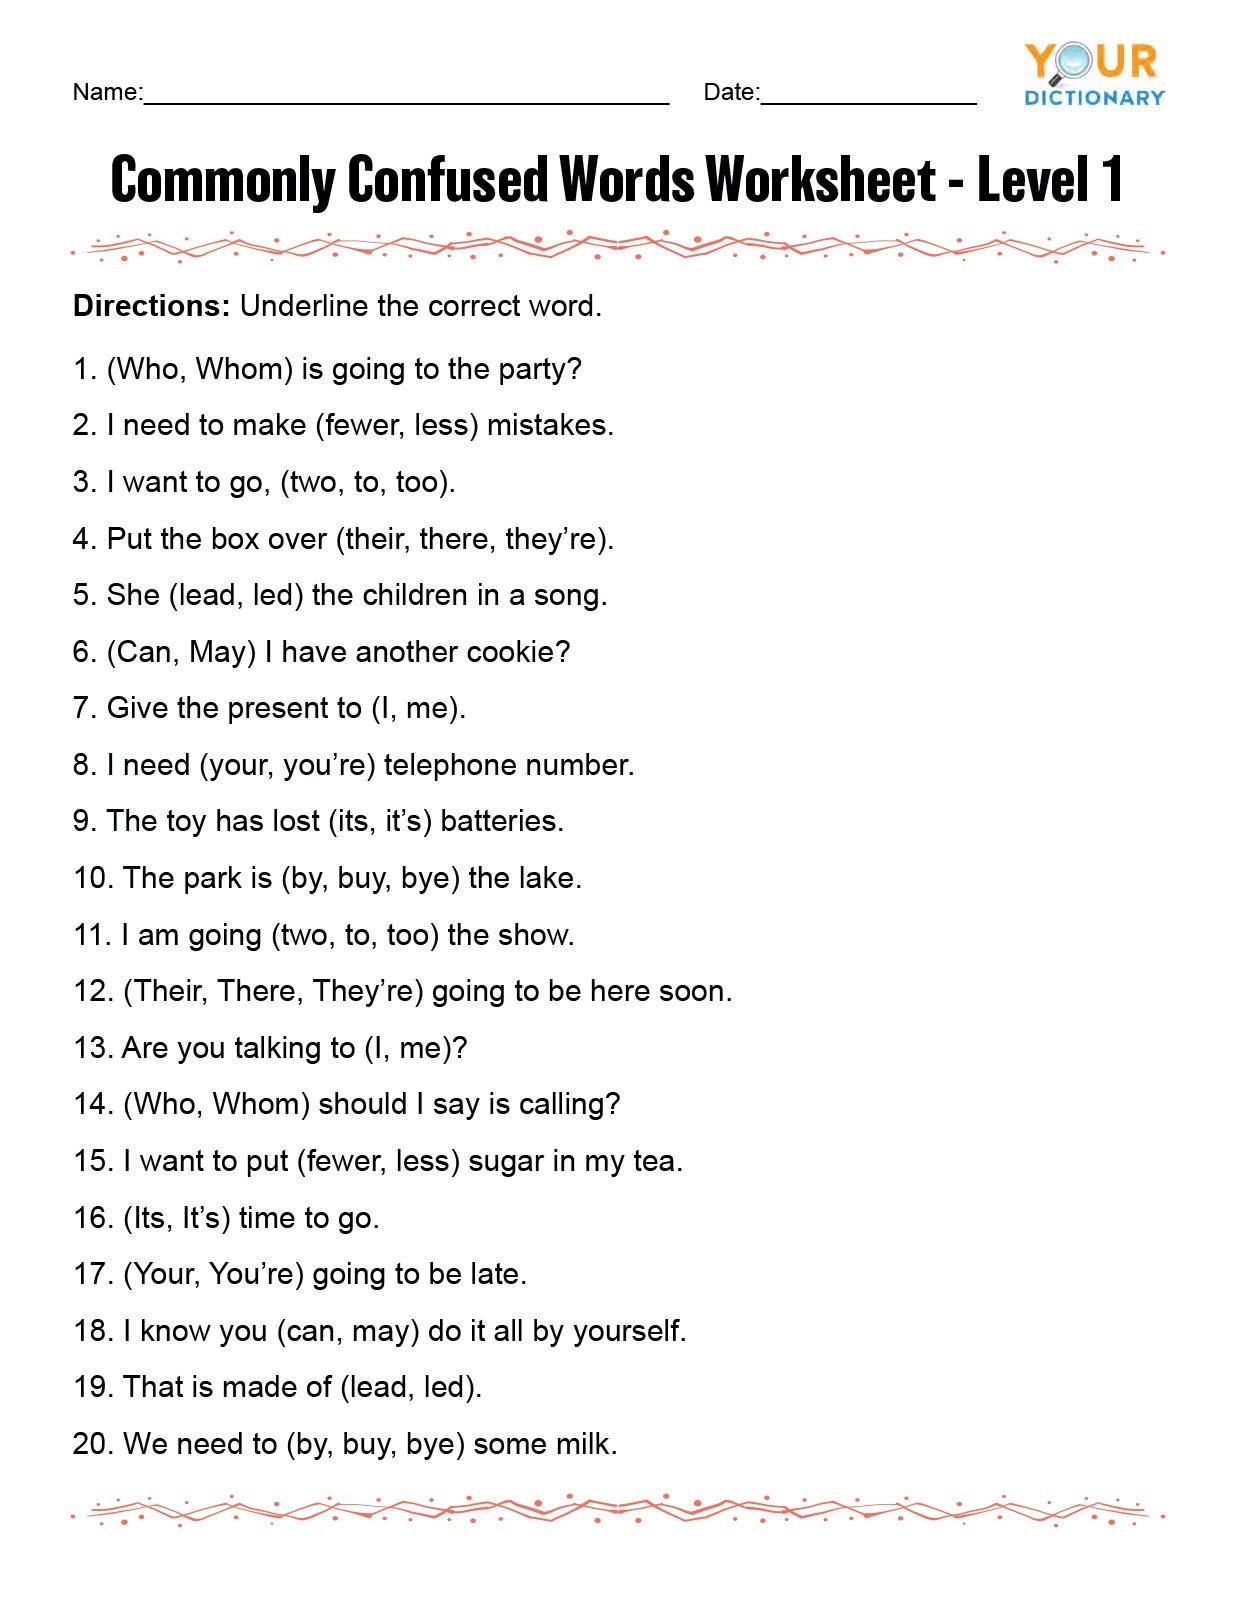 Homonyms Worksheet Pdf Monly Confused Words Worksheet